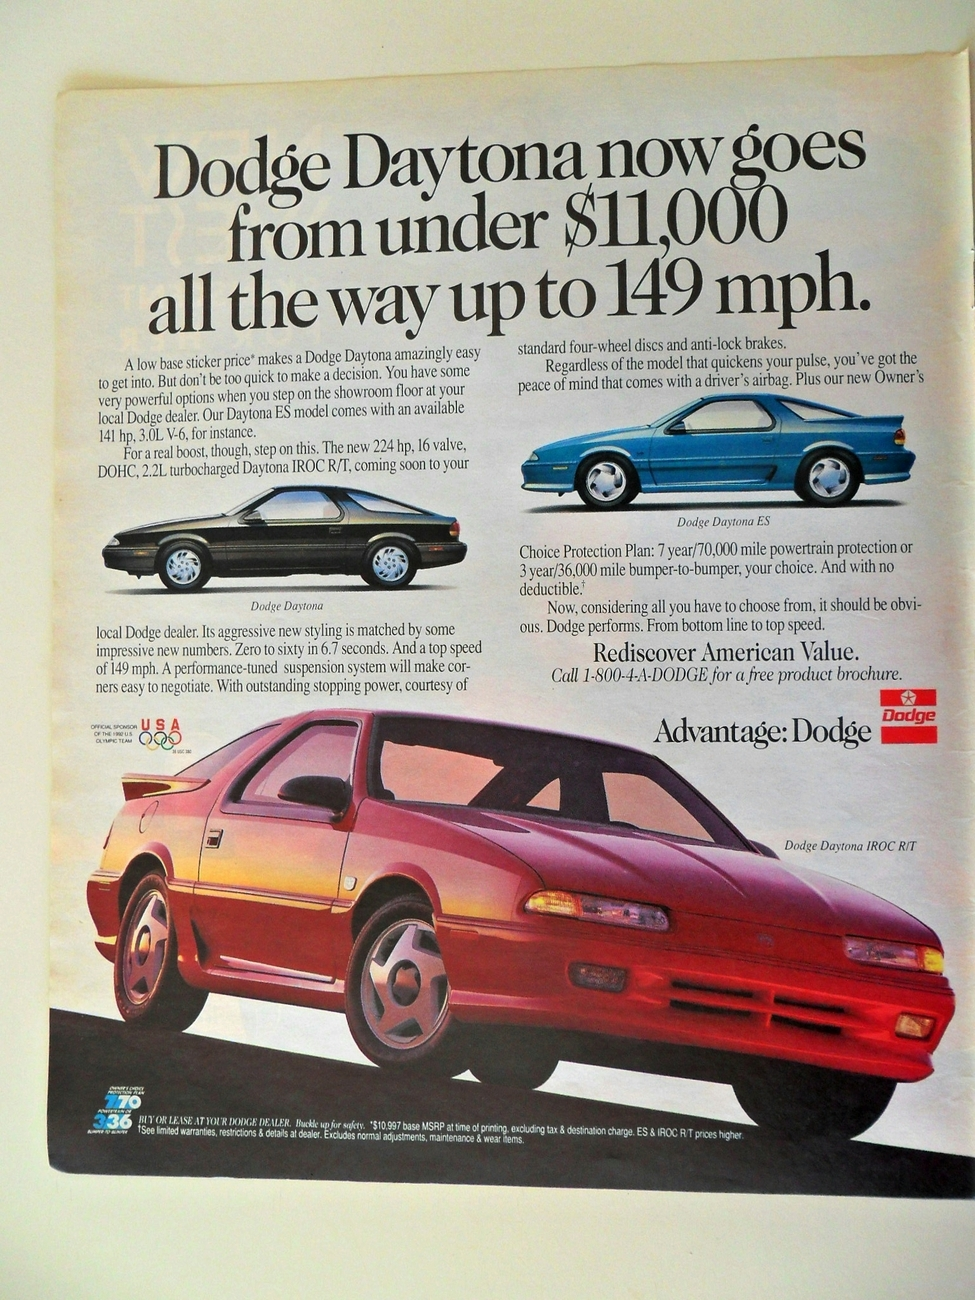 Primary image for Print Ad Dodge Daytona 1991 ES & IROC R/T Under $11,000